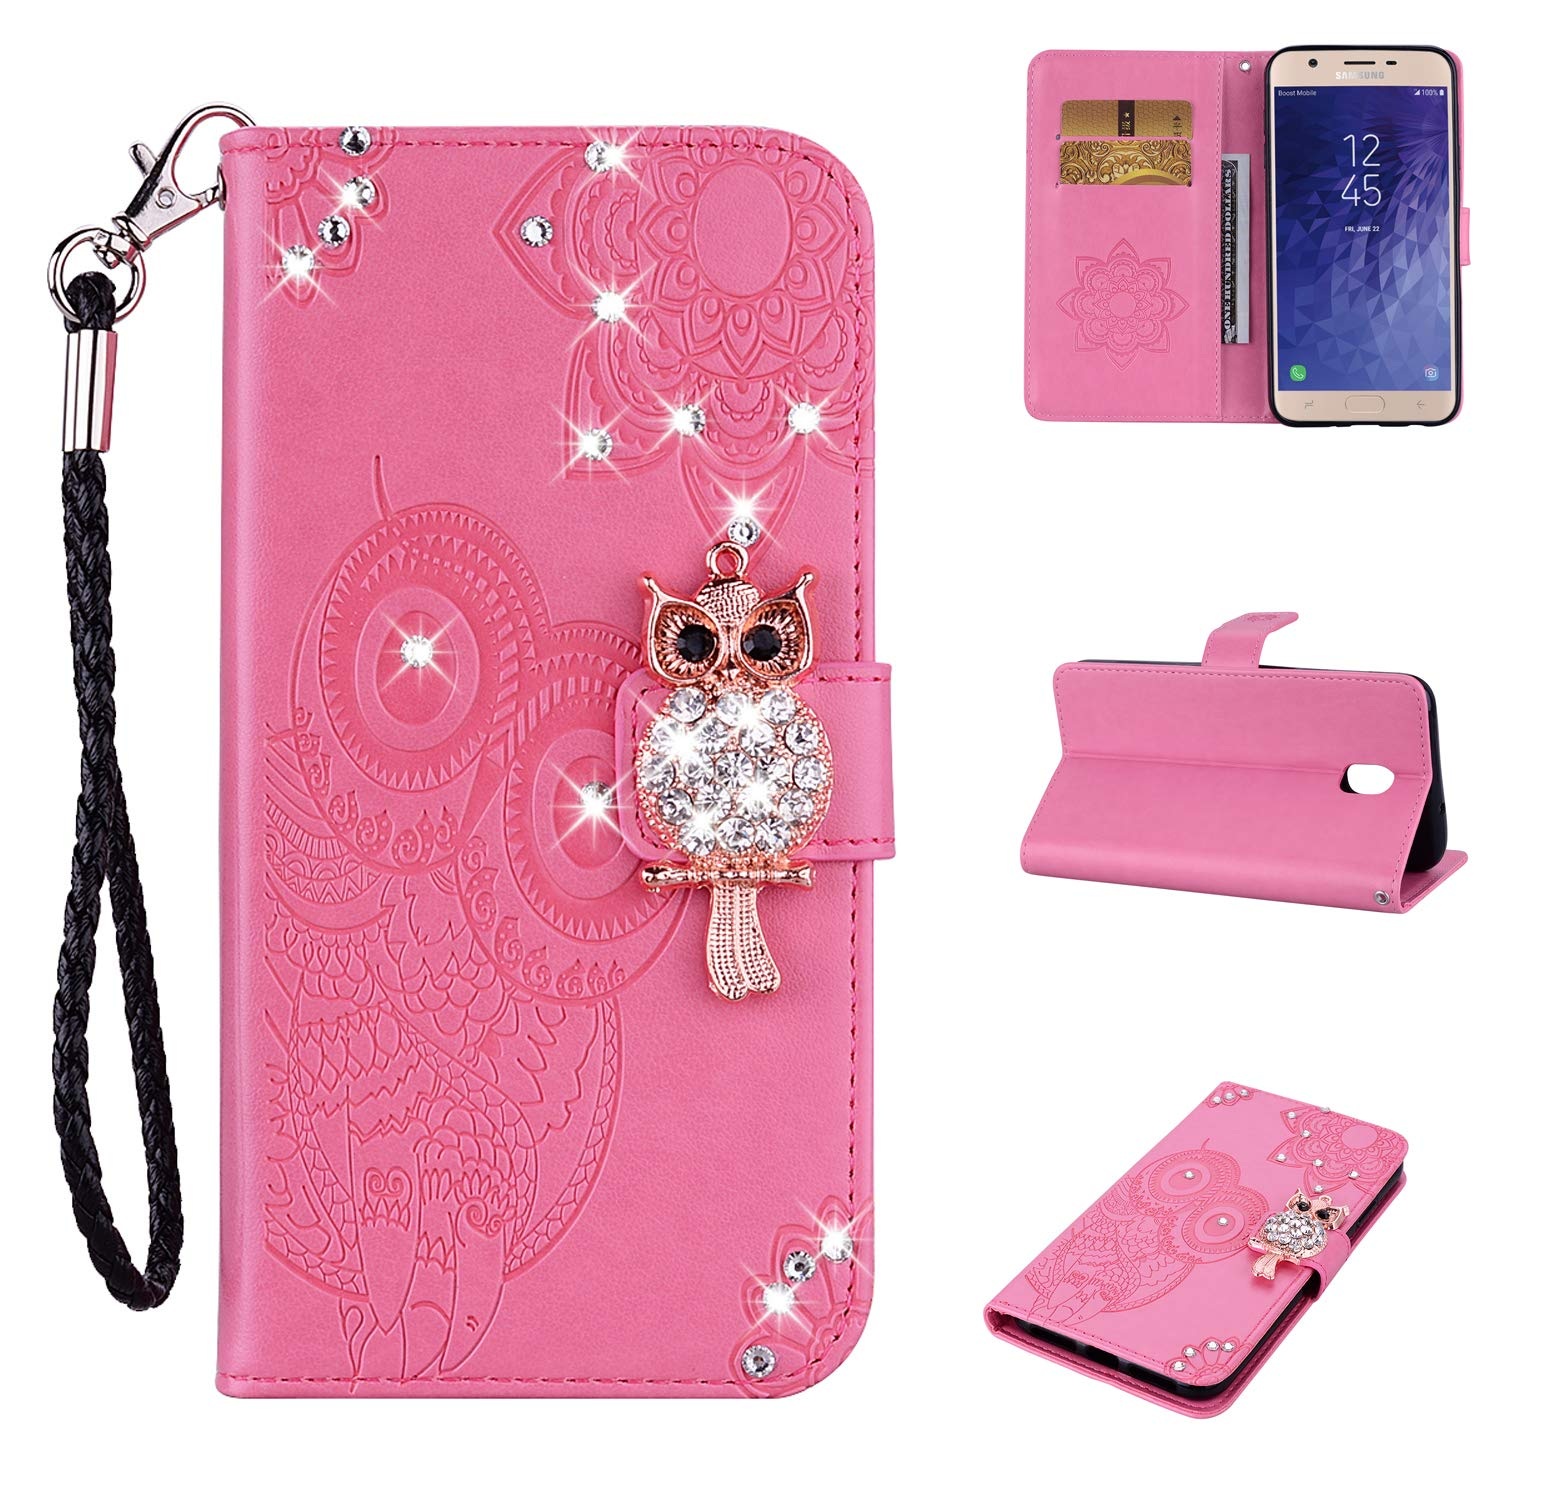 Strap Diamond Wallet Case for Samsung Galaxy J7 2018,Aoucase Luxury 3D Owl Bling Gems Magnetic Cute Mandala Print PU Leather Soft TPU Stand Flip Case with Black Dual-use Pen - Pink by Aoucase